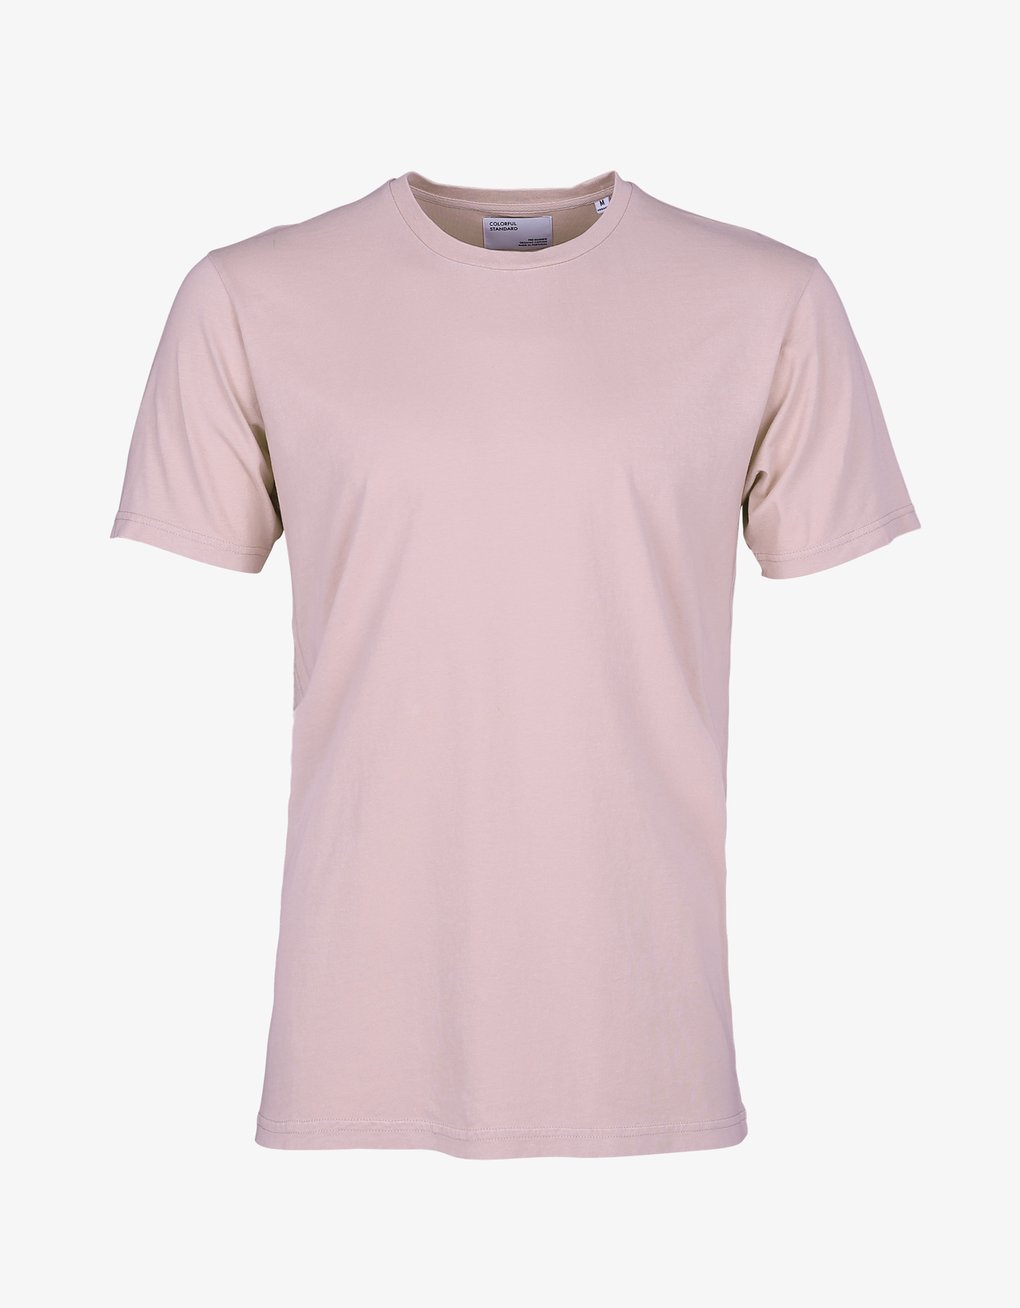 Colorful Standard T-Shirt - Faded Pink